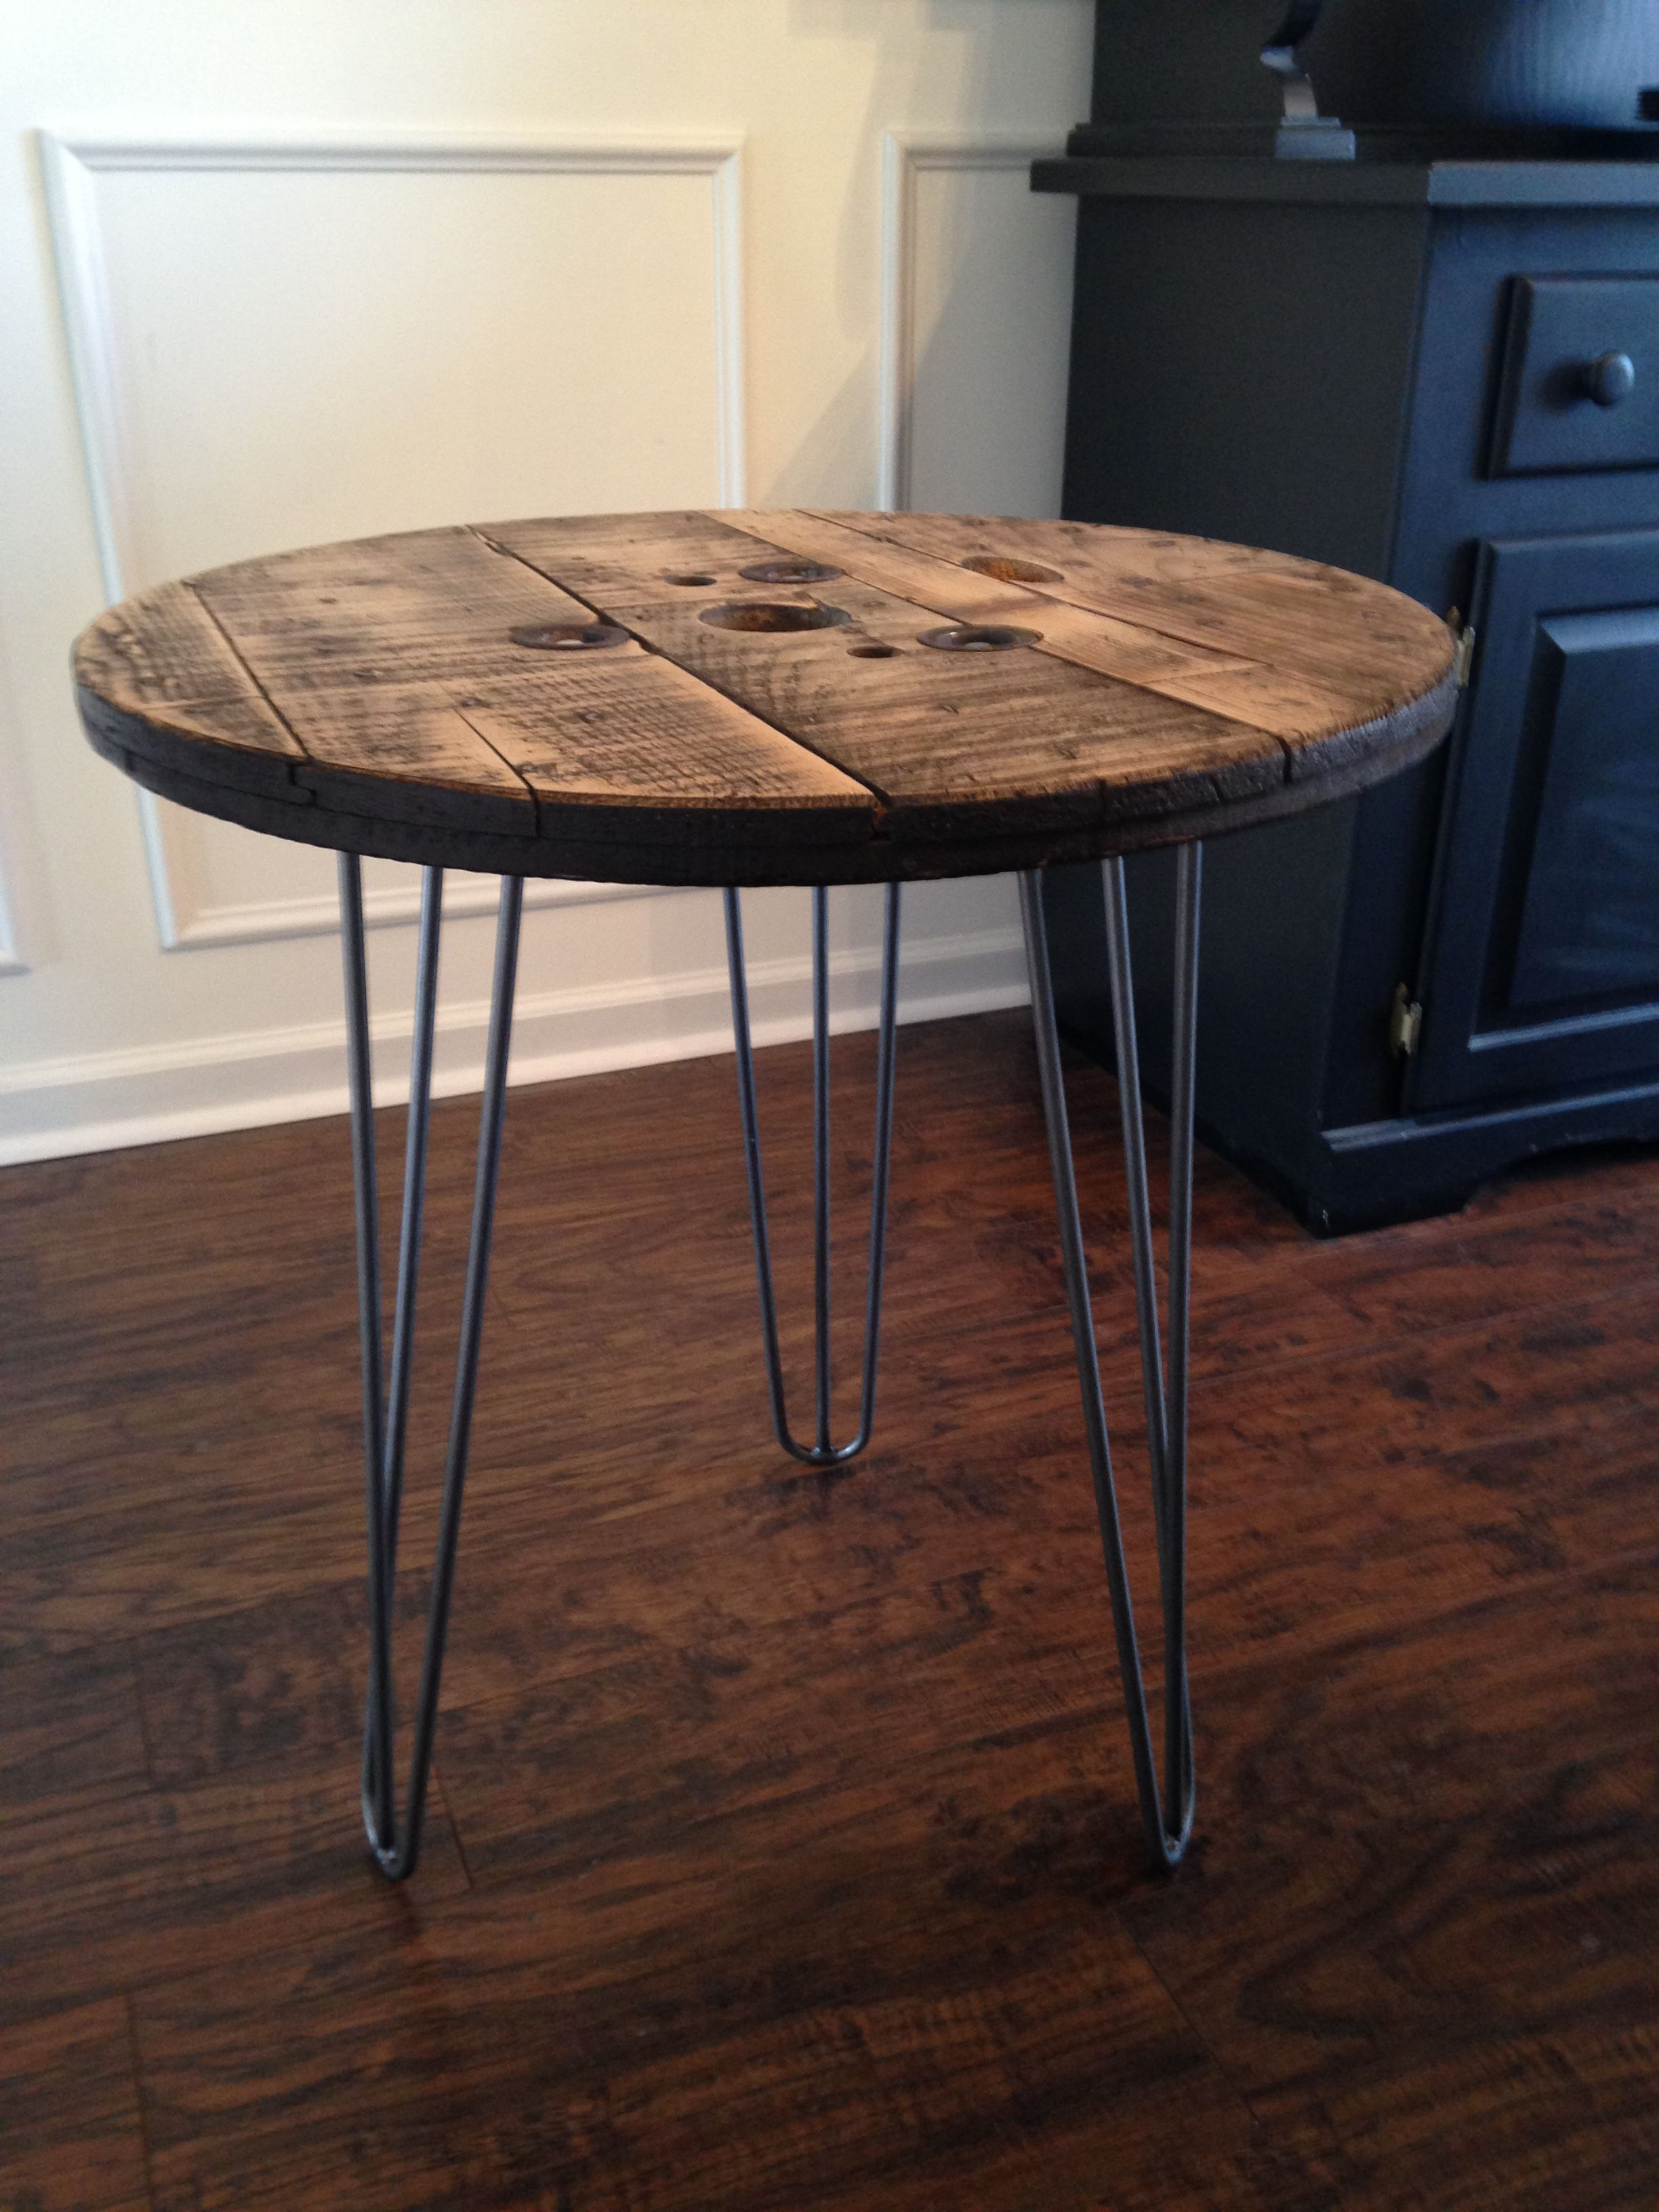 Side Table Top Of Dad S Old Spool Table Paired With 24 3 Bar Hairpin Legs From Amazon Spool Tables Spool Furniture Side Table Wood